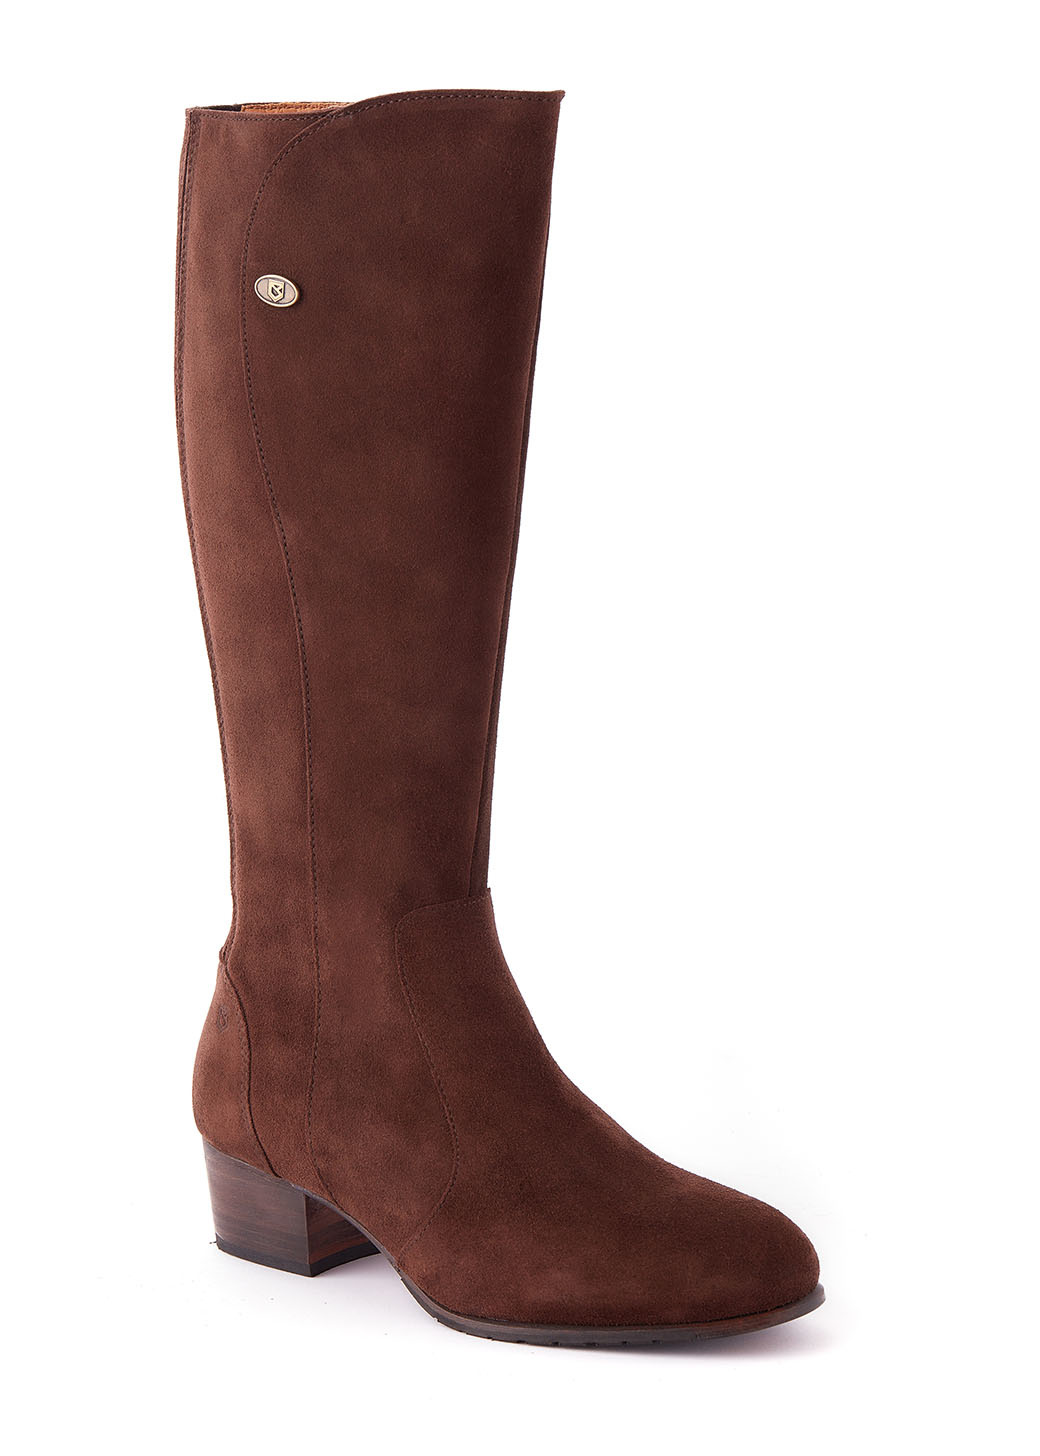 Dubarry Downpatrick Kniehoge Laars - Cigar-2